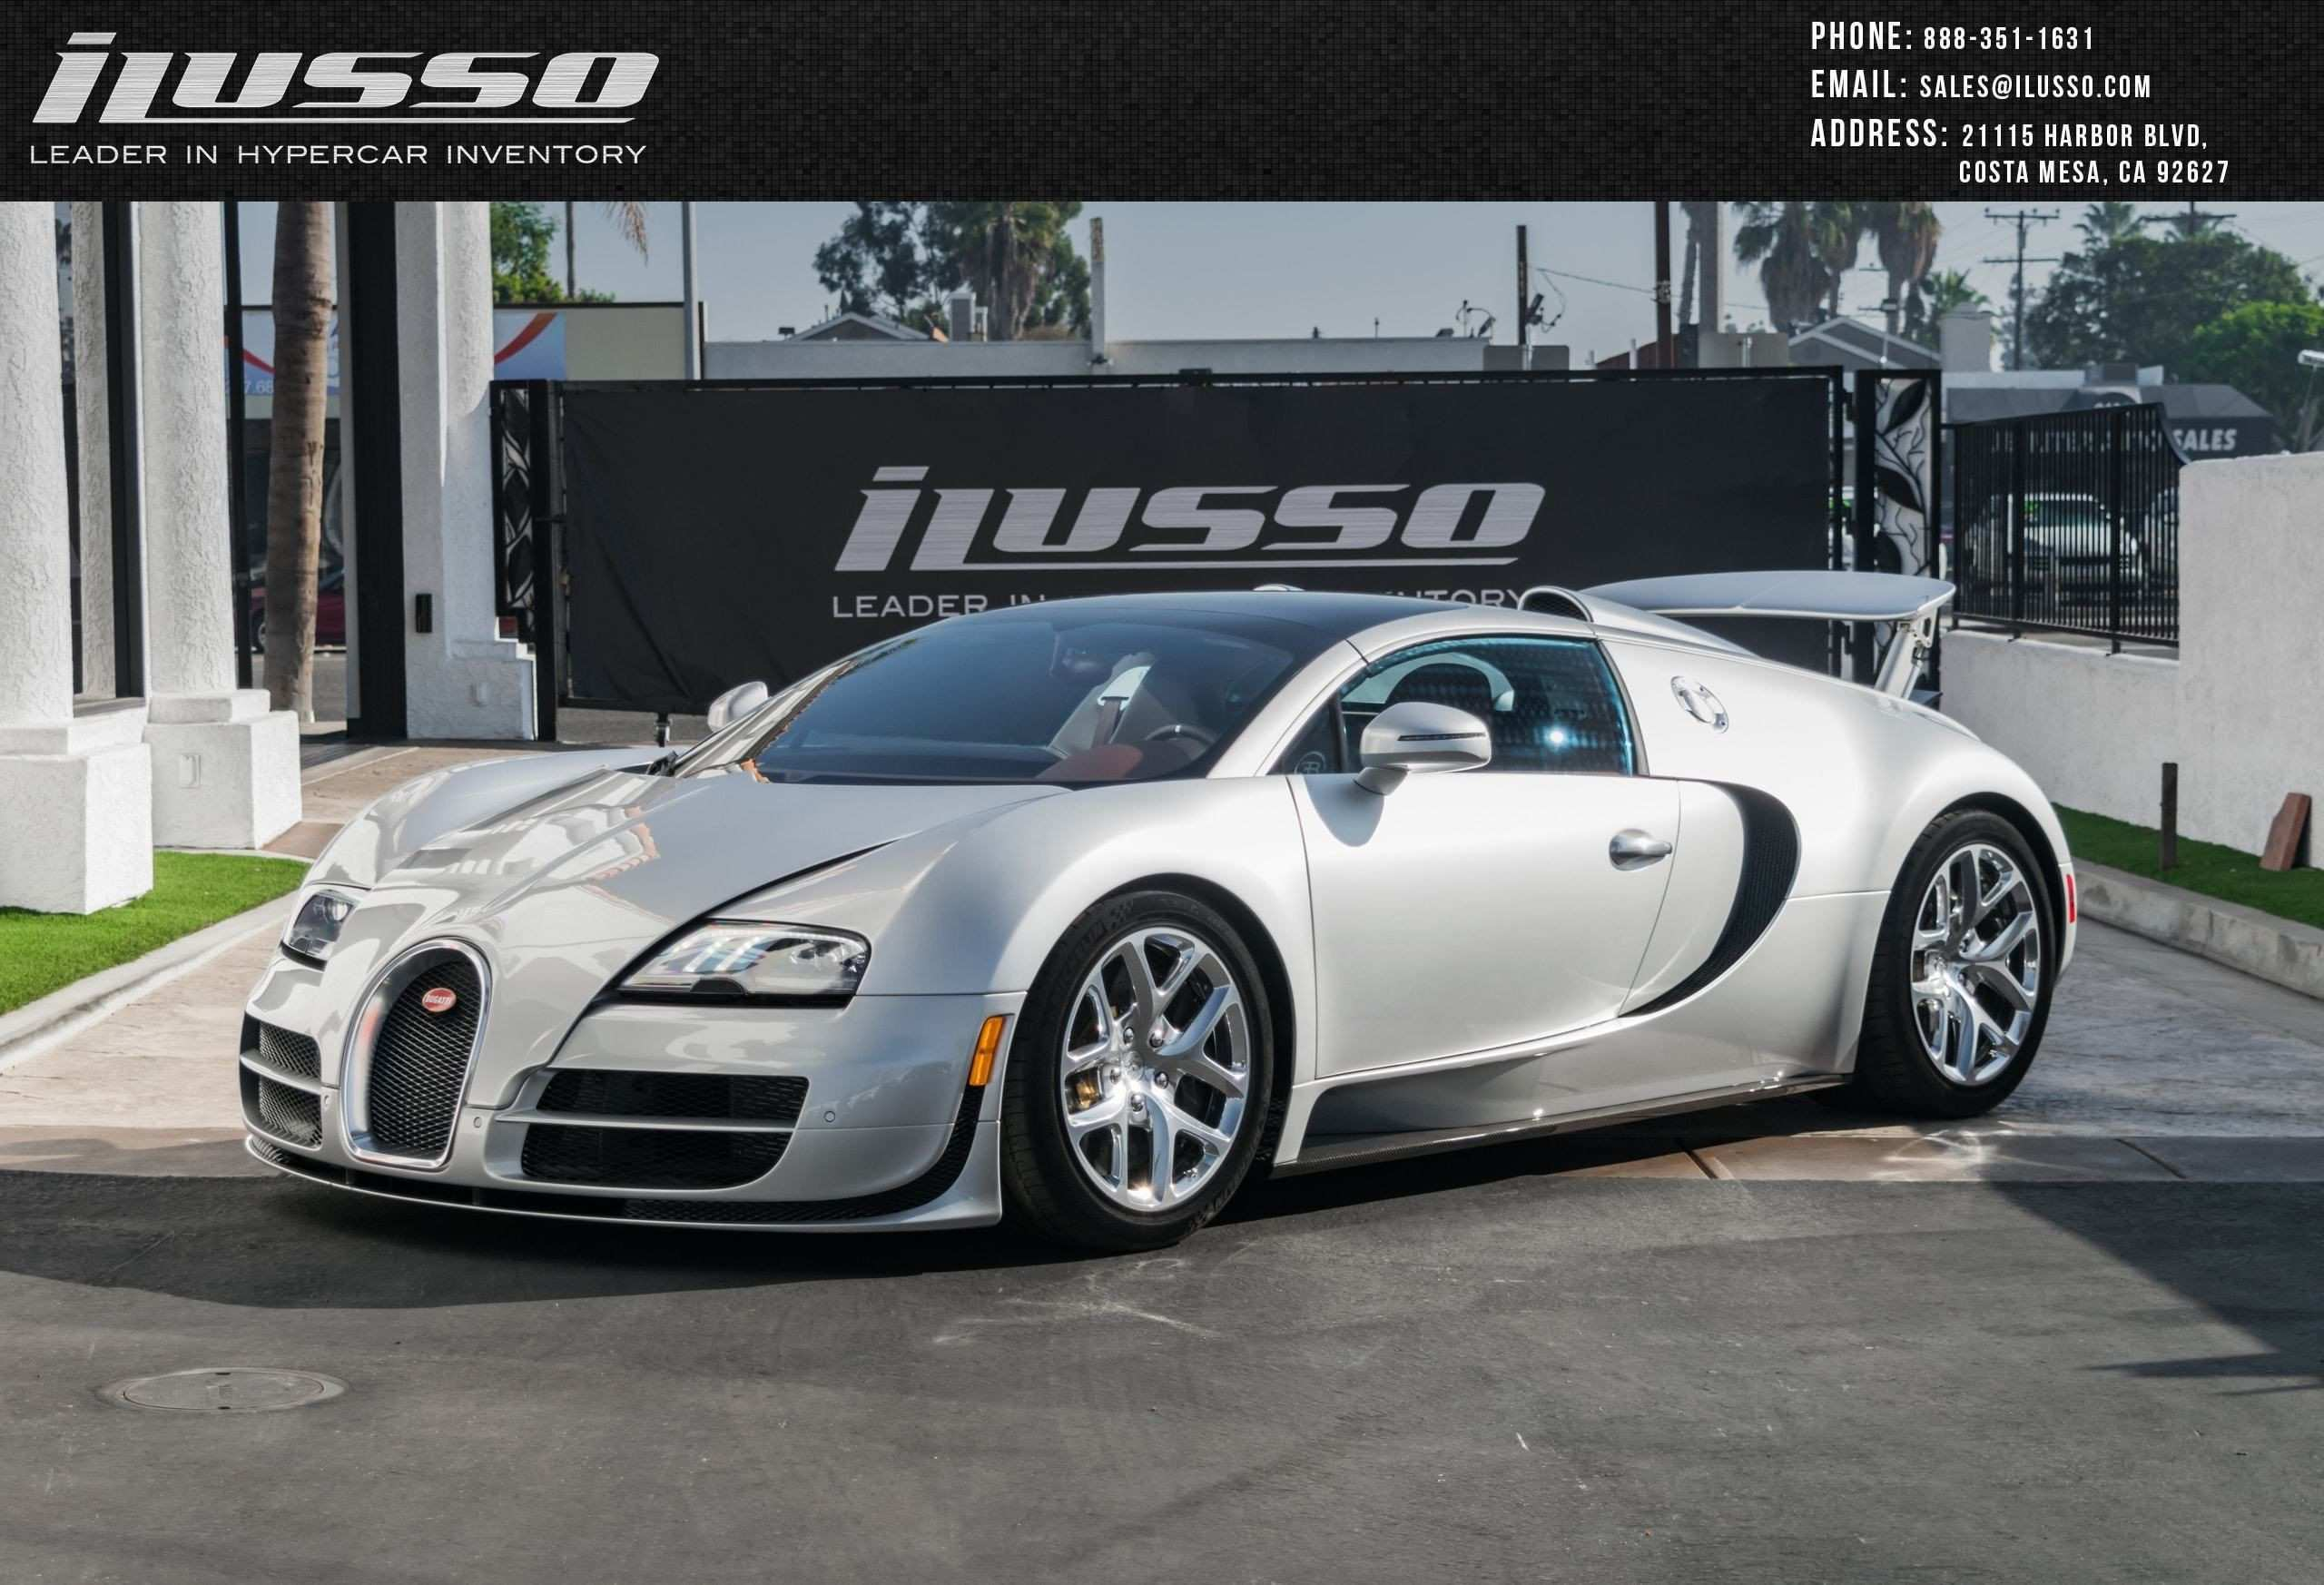 63 All New 2019 Bugatti Veyron Specs And Review